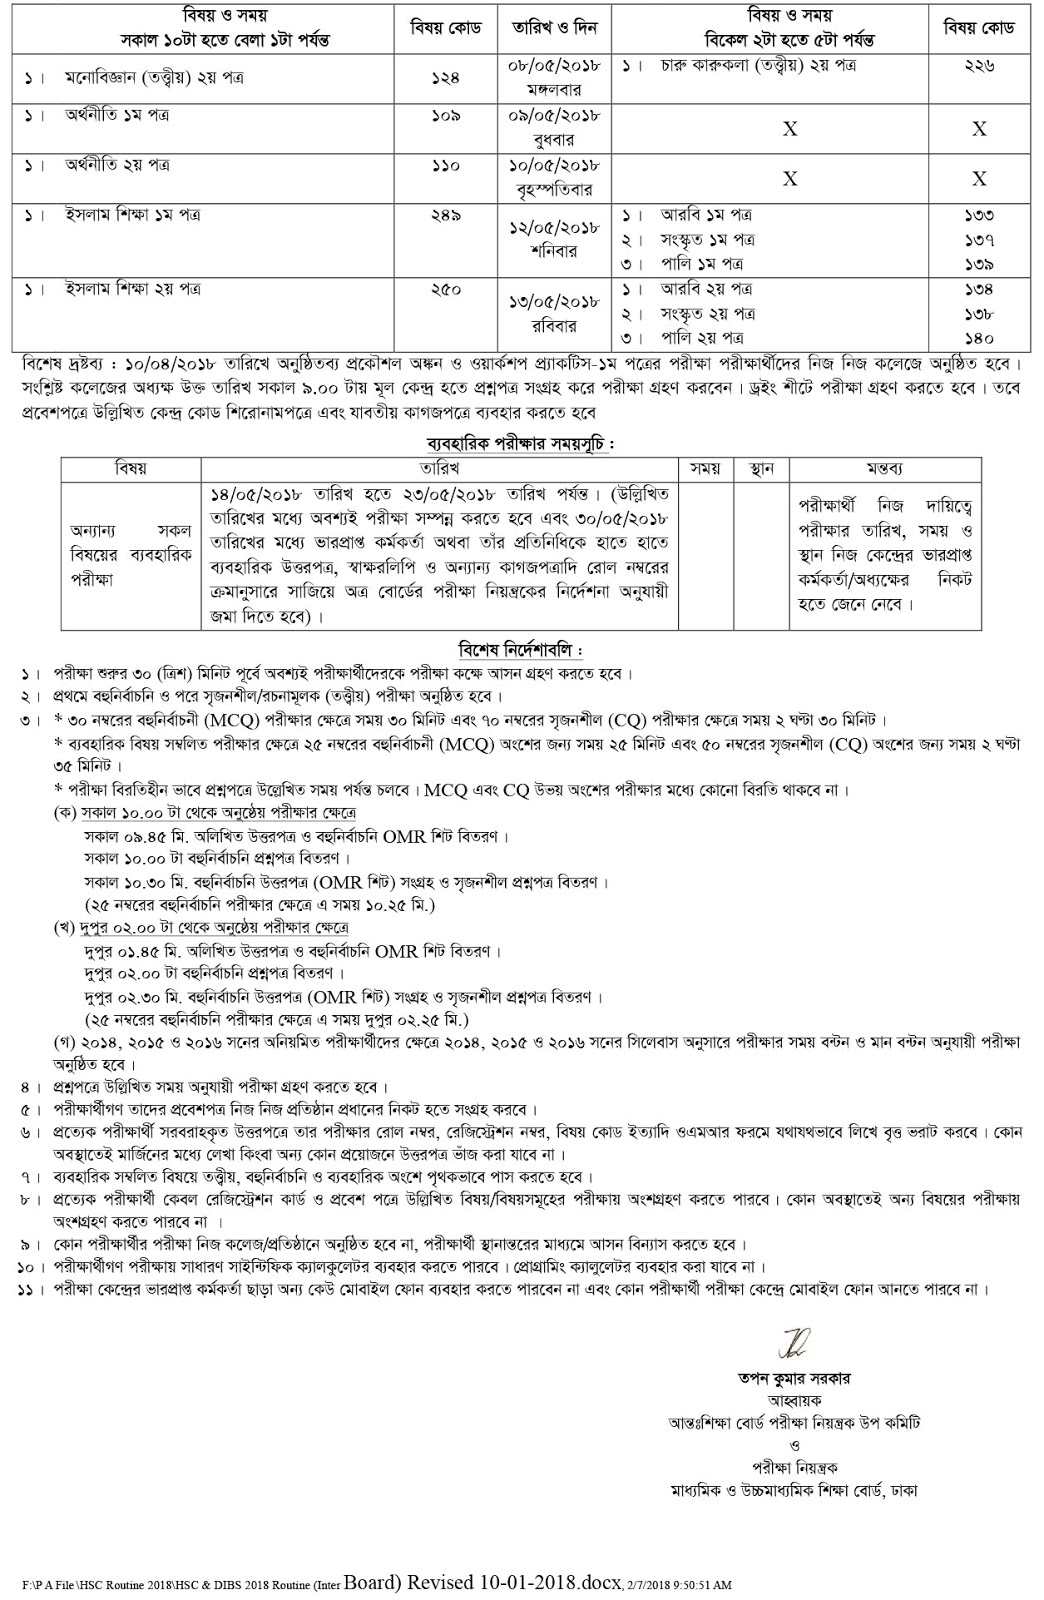 hsc routine 2019 png download, hsc routine 2019 download pdf, hsc exam routine 2019 pdf, hsc routine 2019